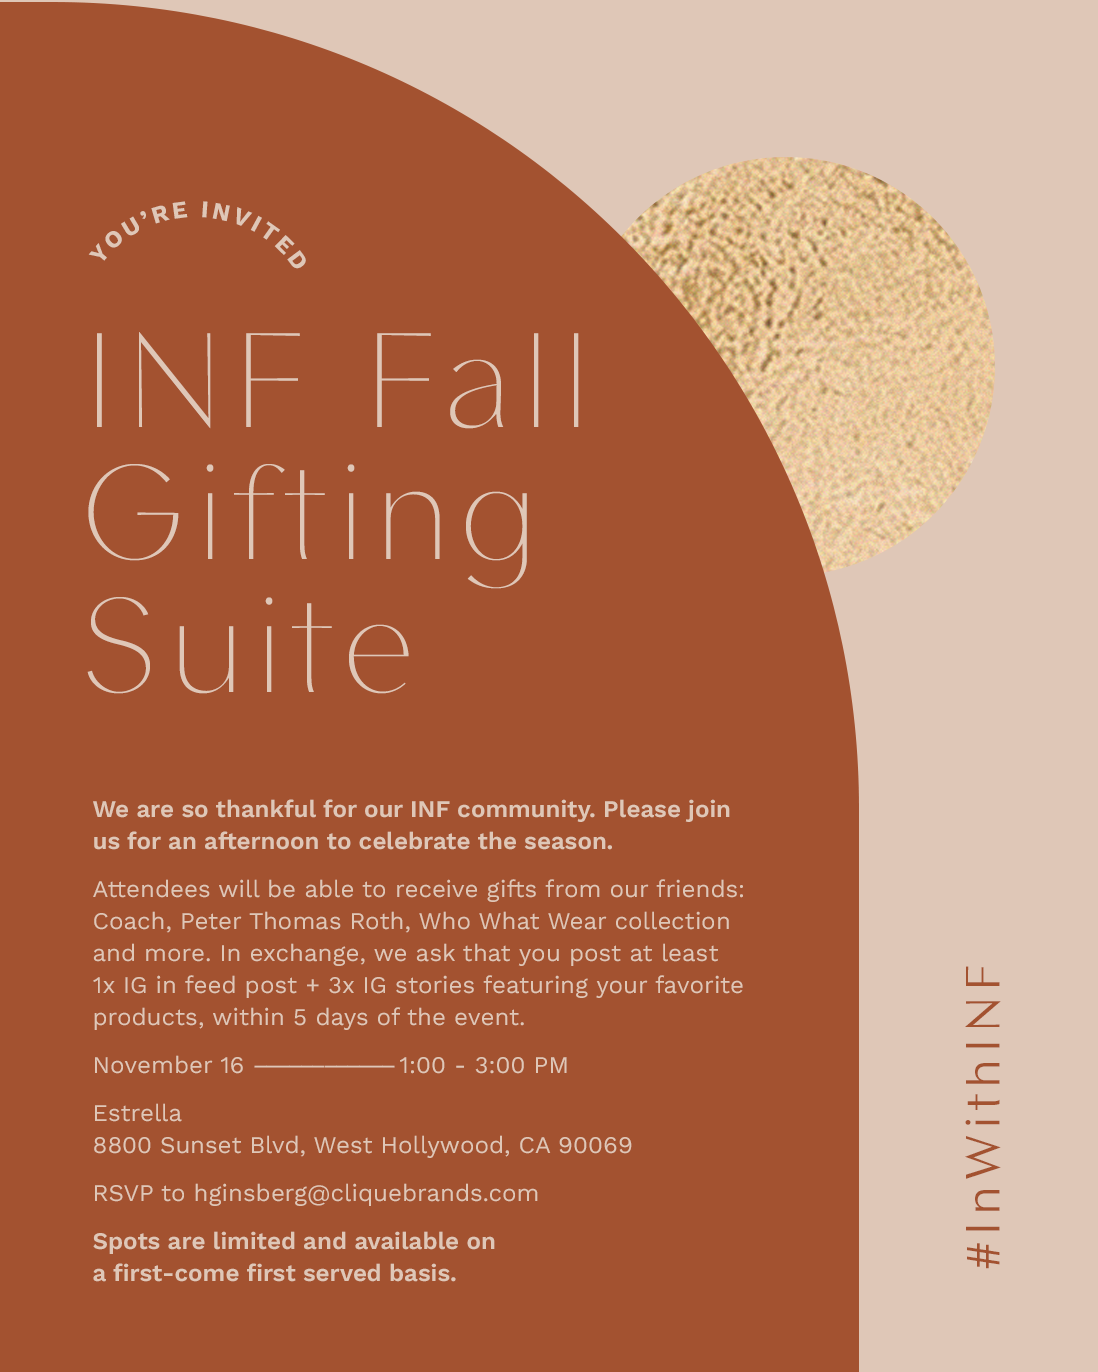 Fall-Gifting-Suite-Invite-1.png